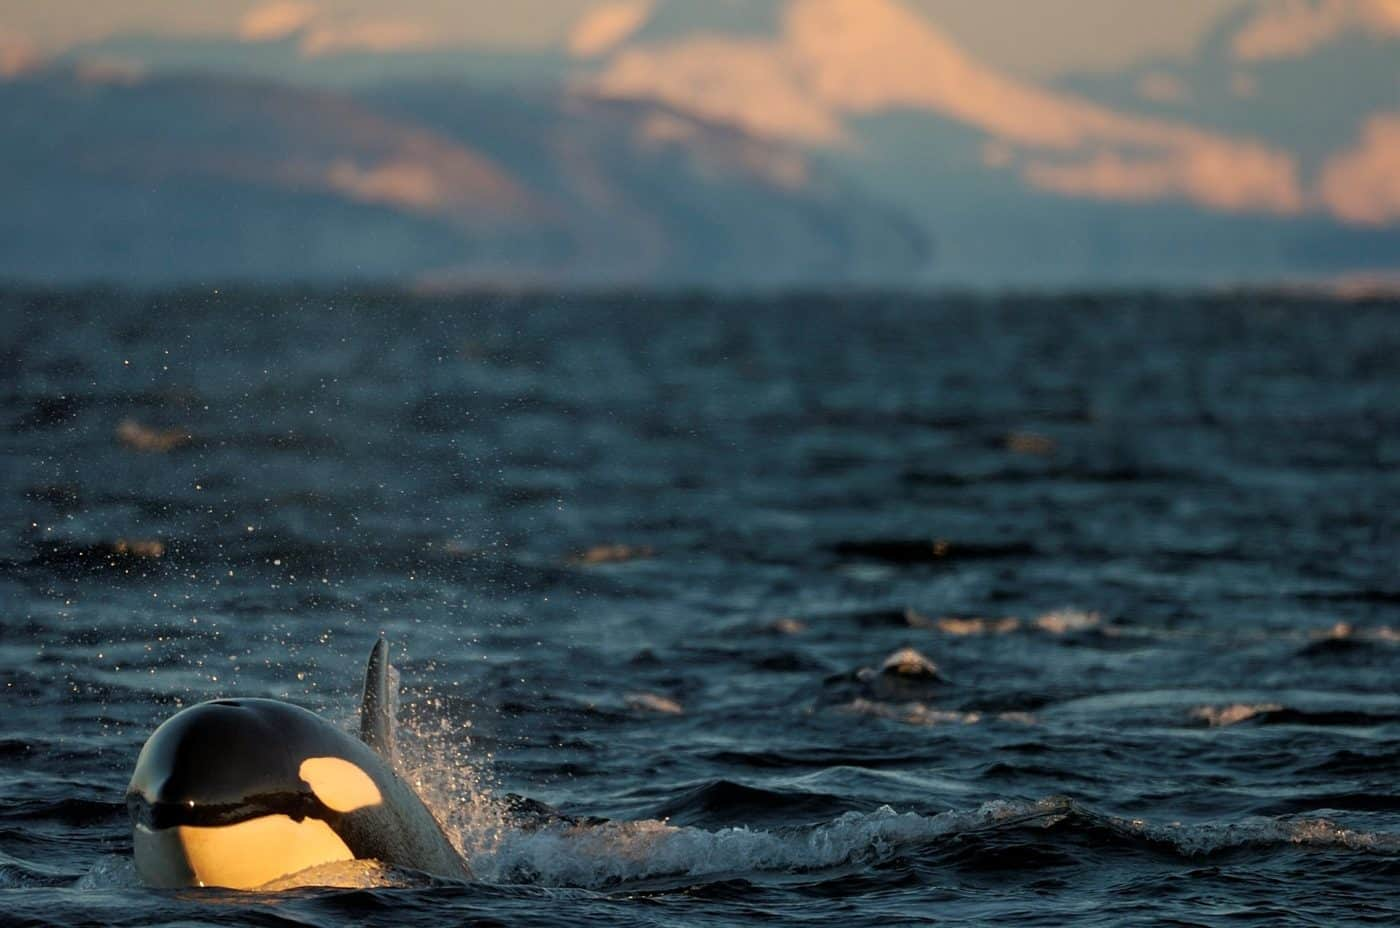 Killer whale. Photo by Magnus Elander.